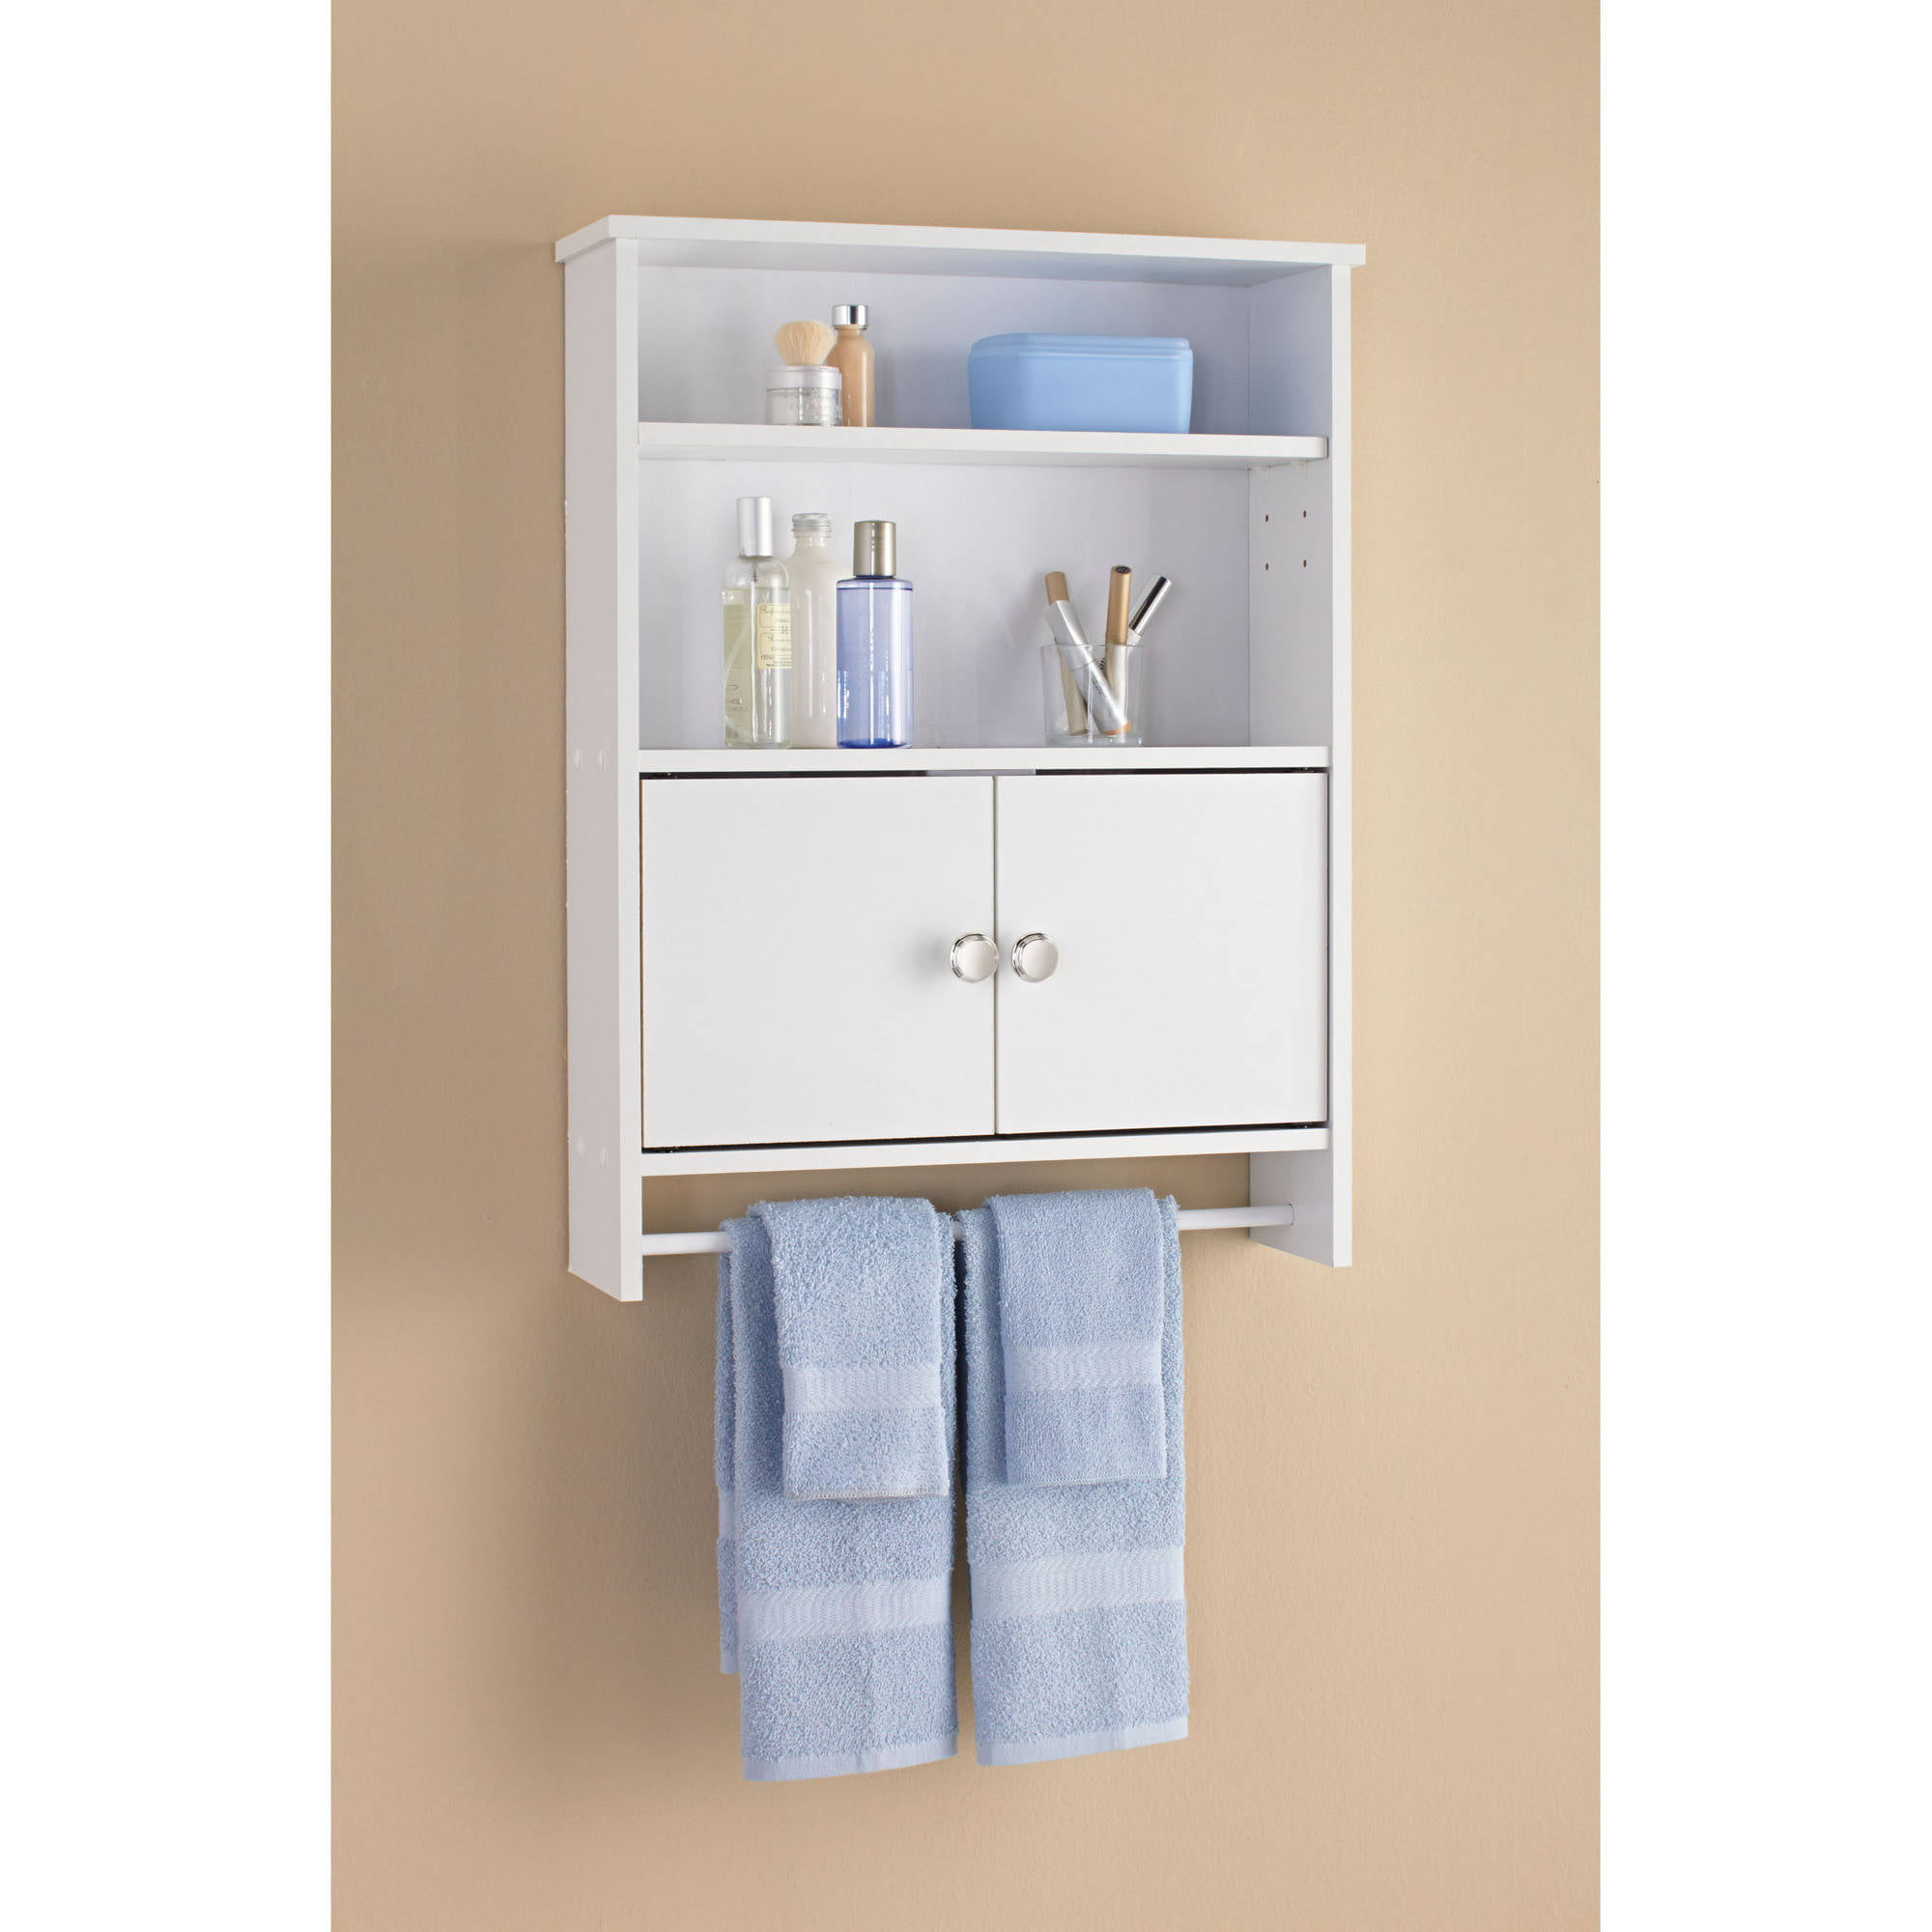 Bathroom wall shelf - Bathroom Wall Shelf 6